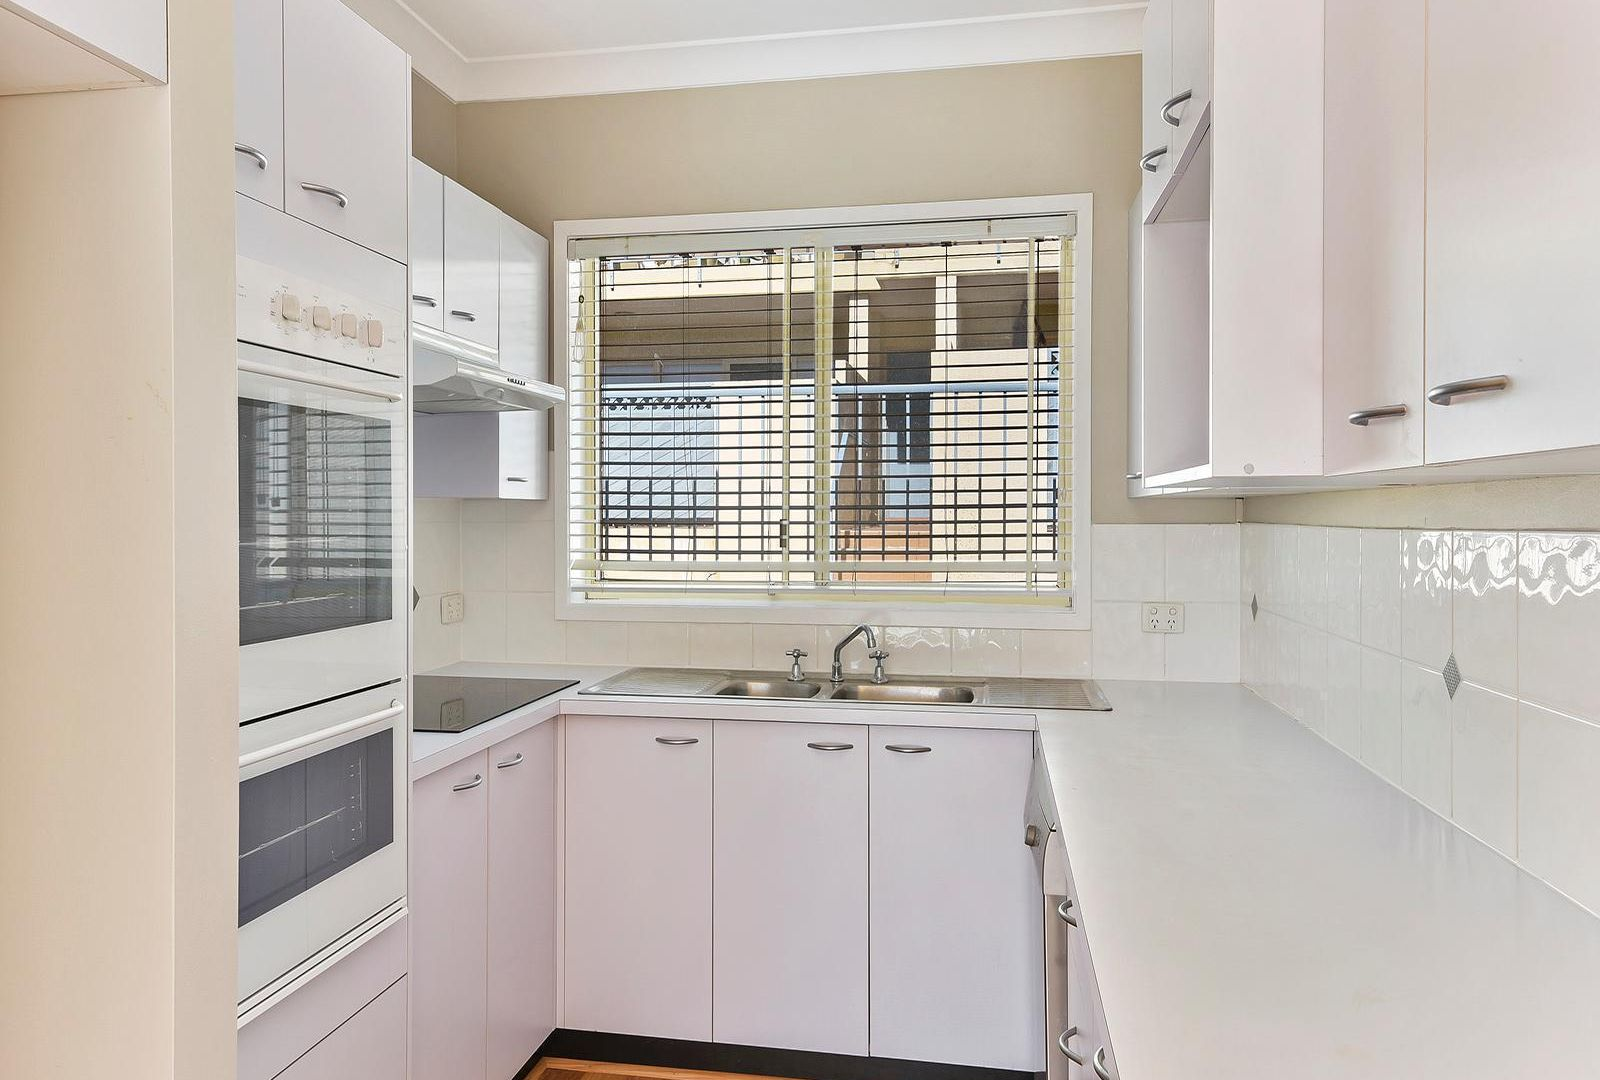 3/39 Havenview Road, Terrigal NSW 2260, Image 1